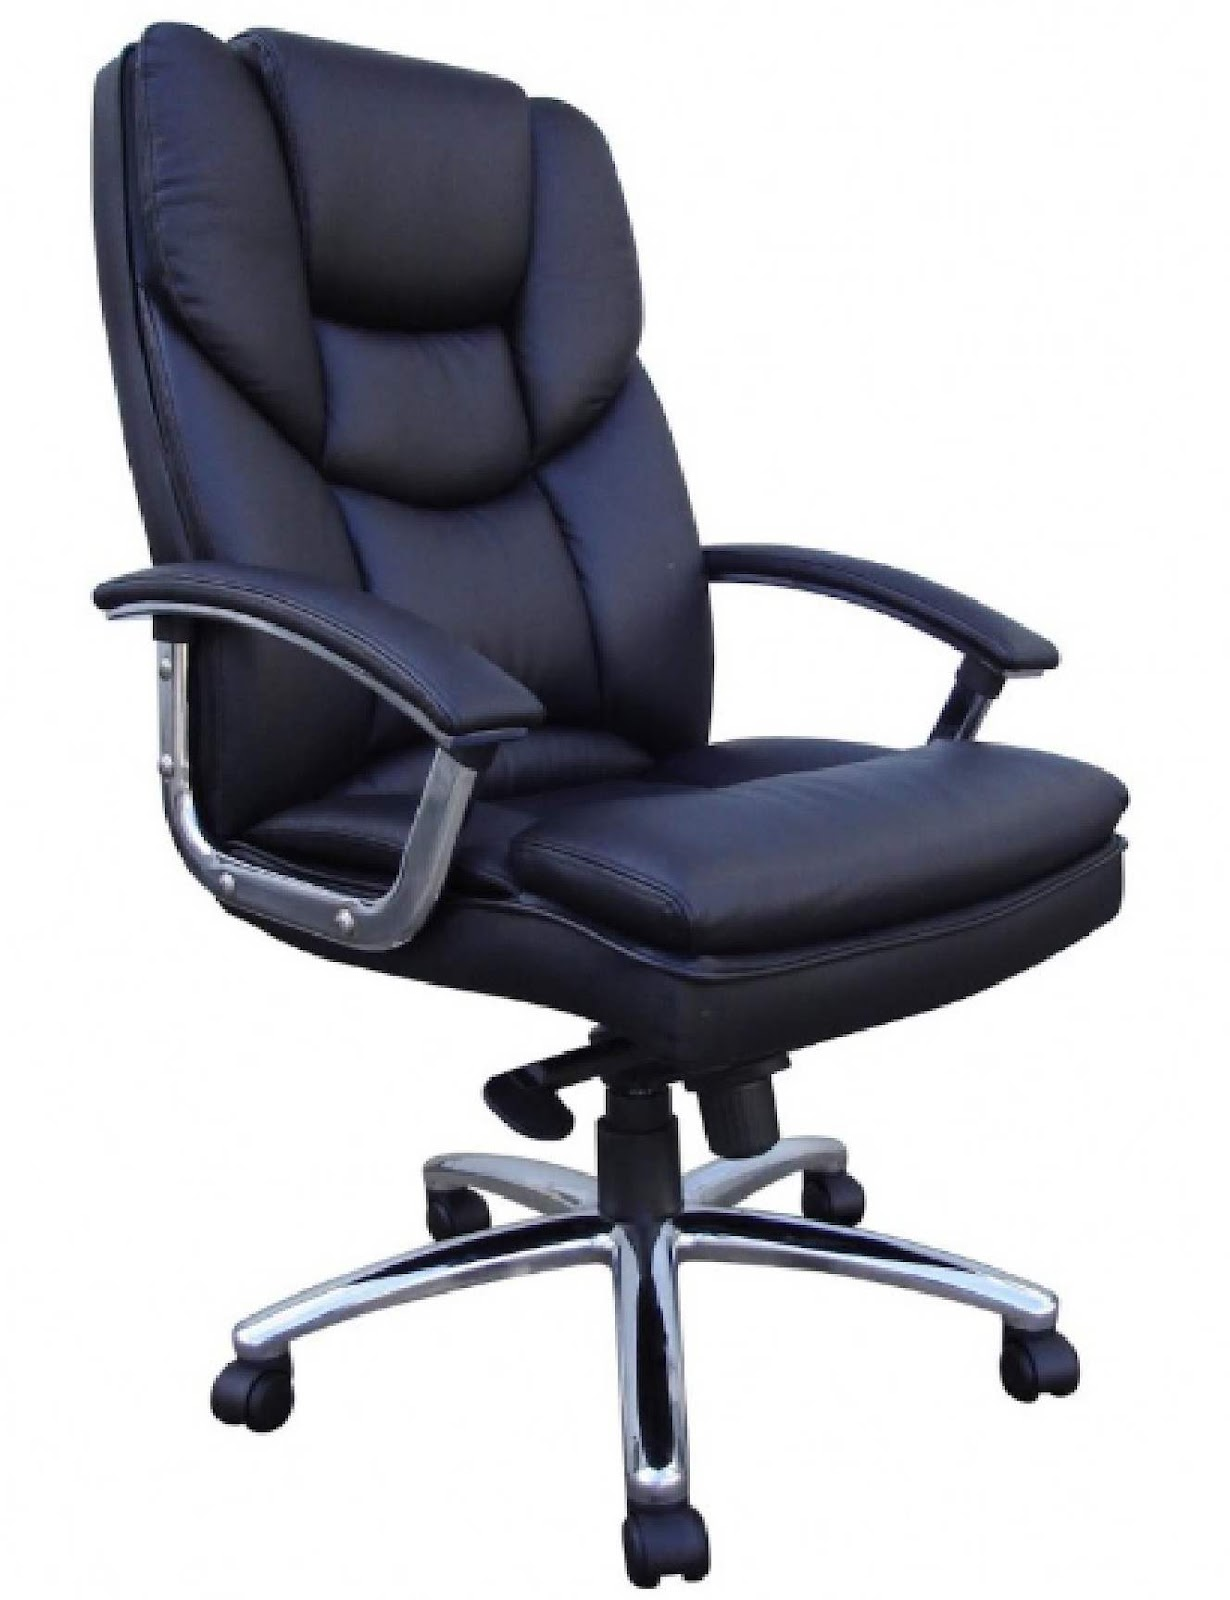 Comfortable Compact Chair Office Furniture Canada Business Services